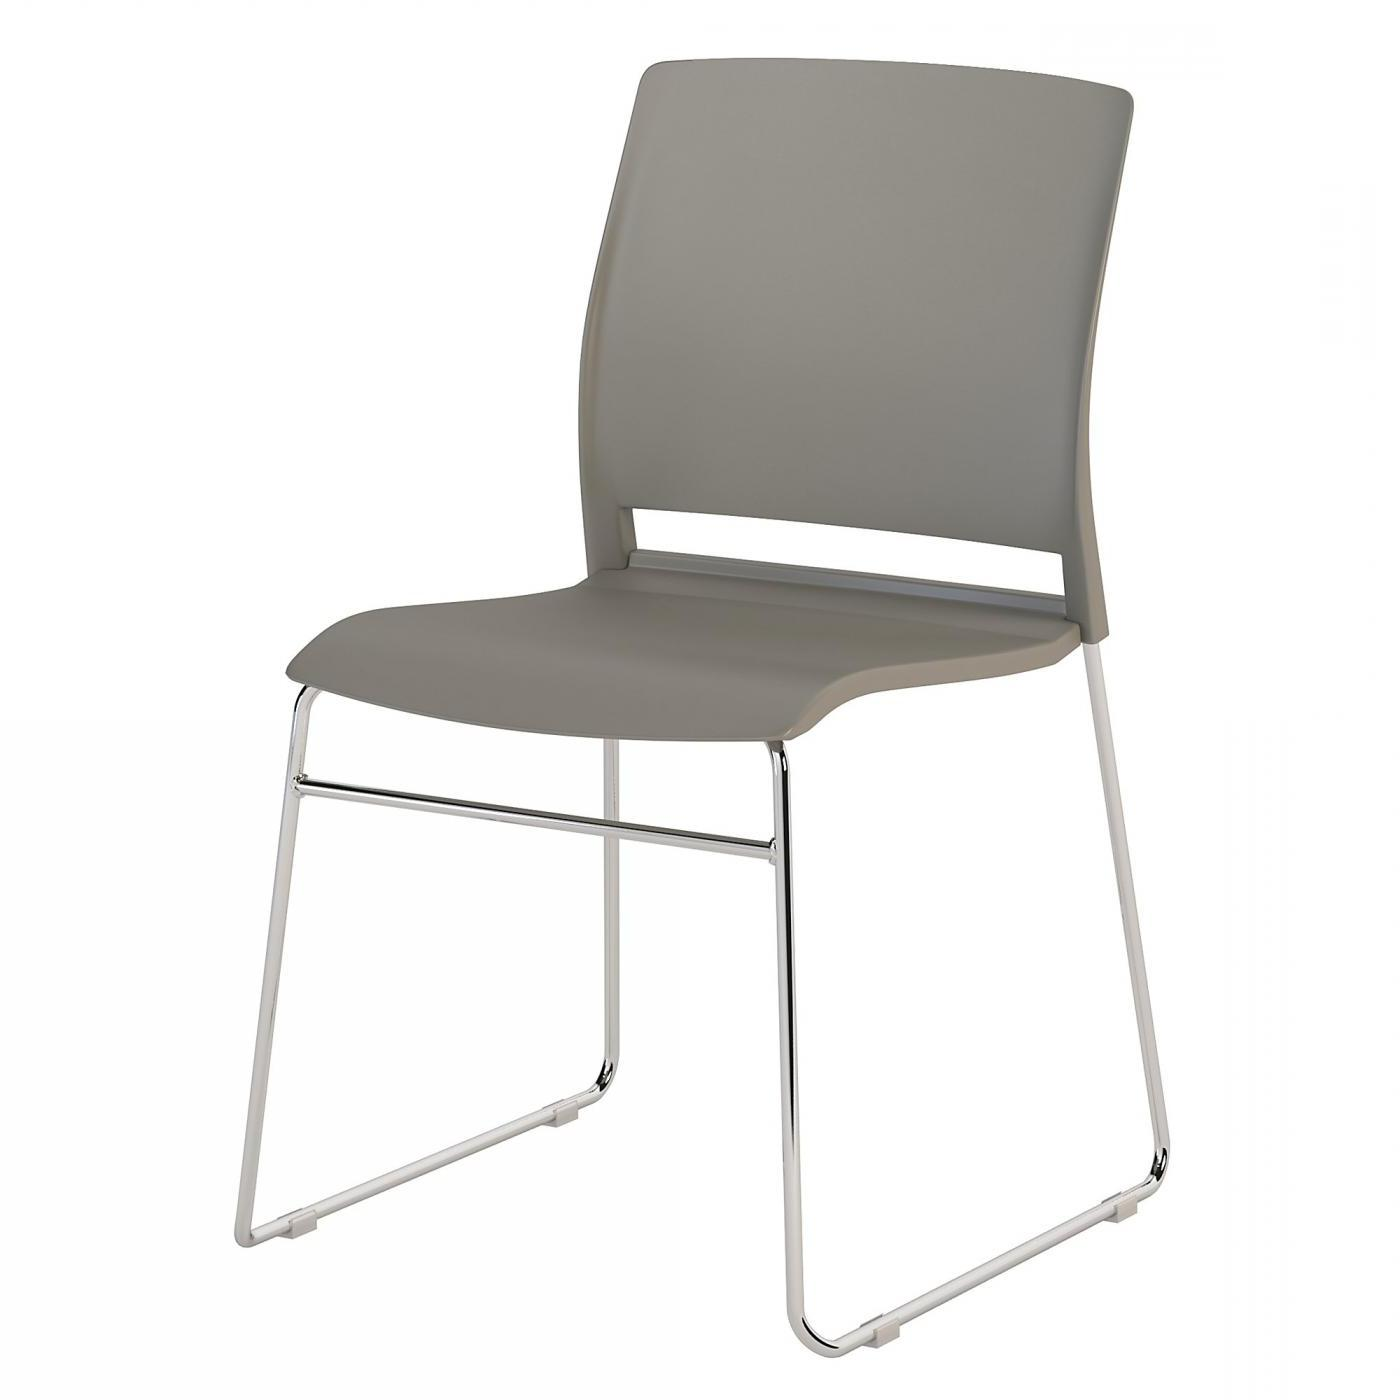 <font color=#c60><b>BUSH BUSINESS FURNITURE CORPORATE STACKABLE CHAIRS SET OF 2. FREE SHIPPING</font></b> </font></b></font></b>